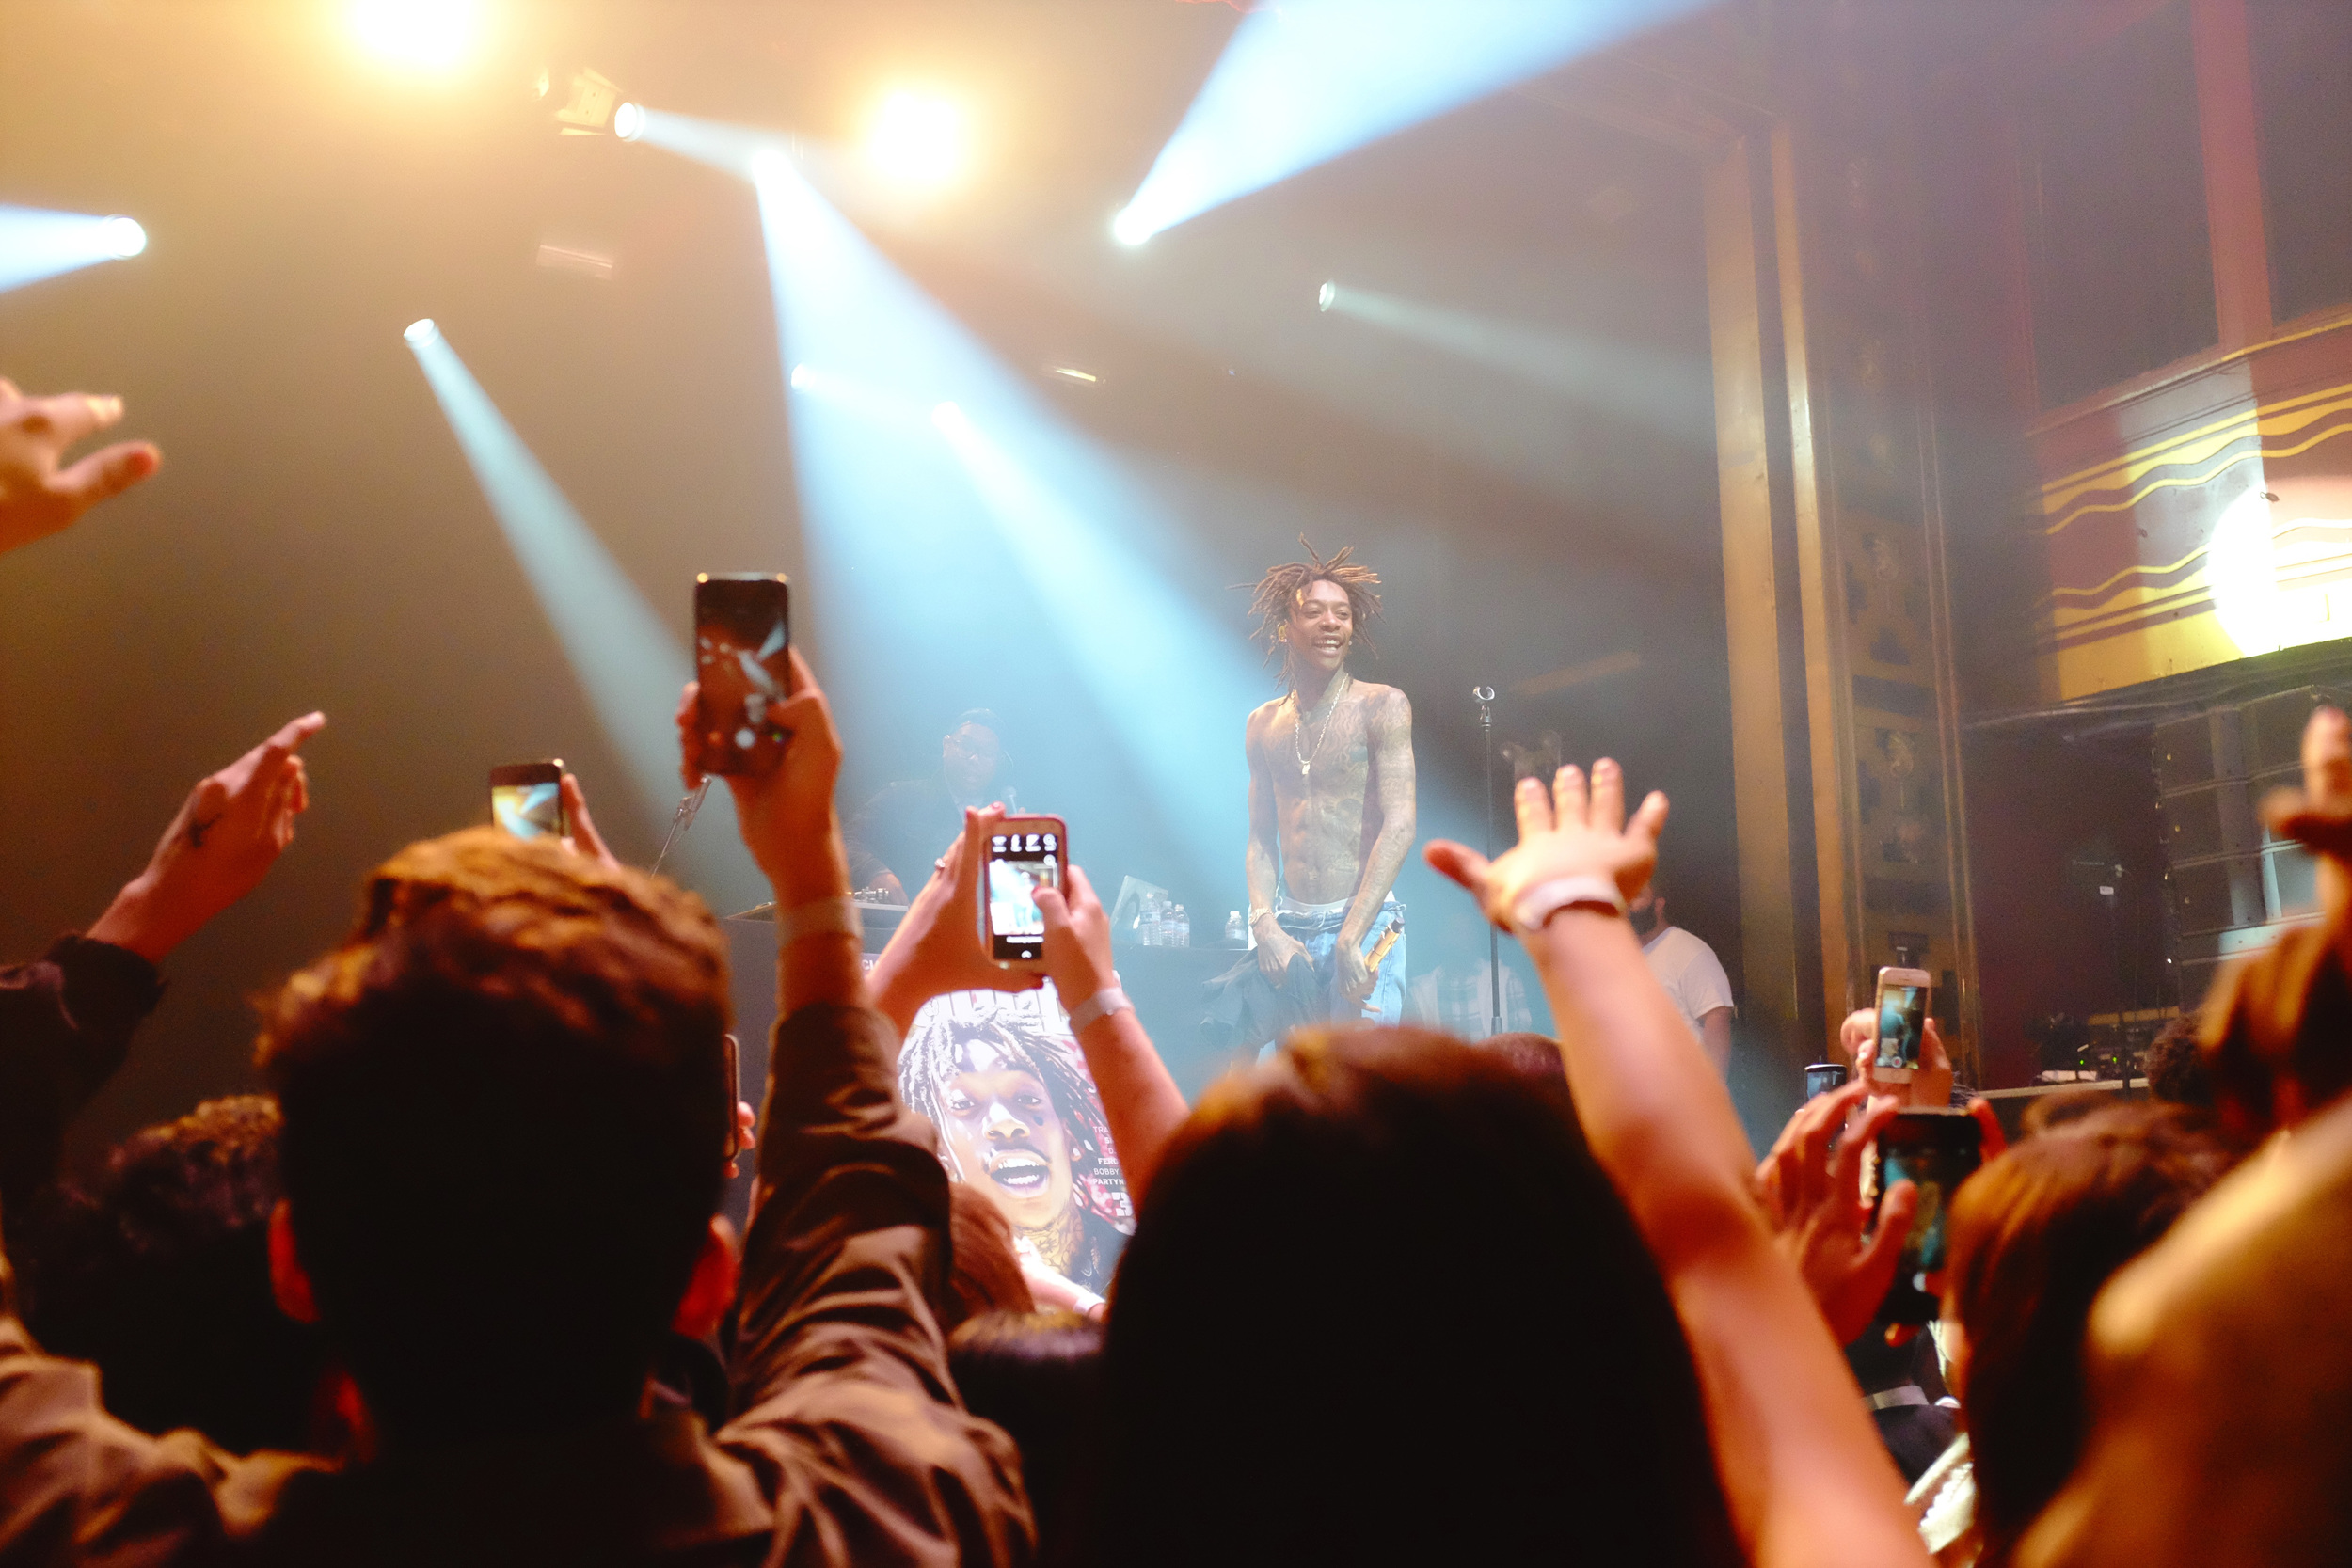 Wiz Khalifa performs at New York City's Webster Hall - October, 2014